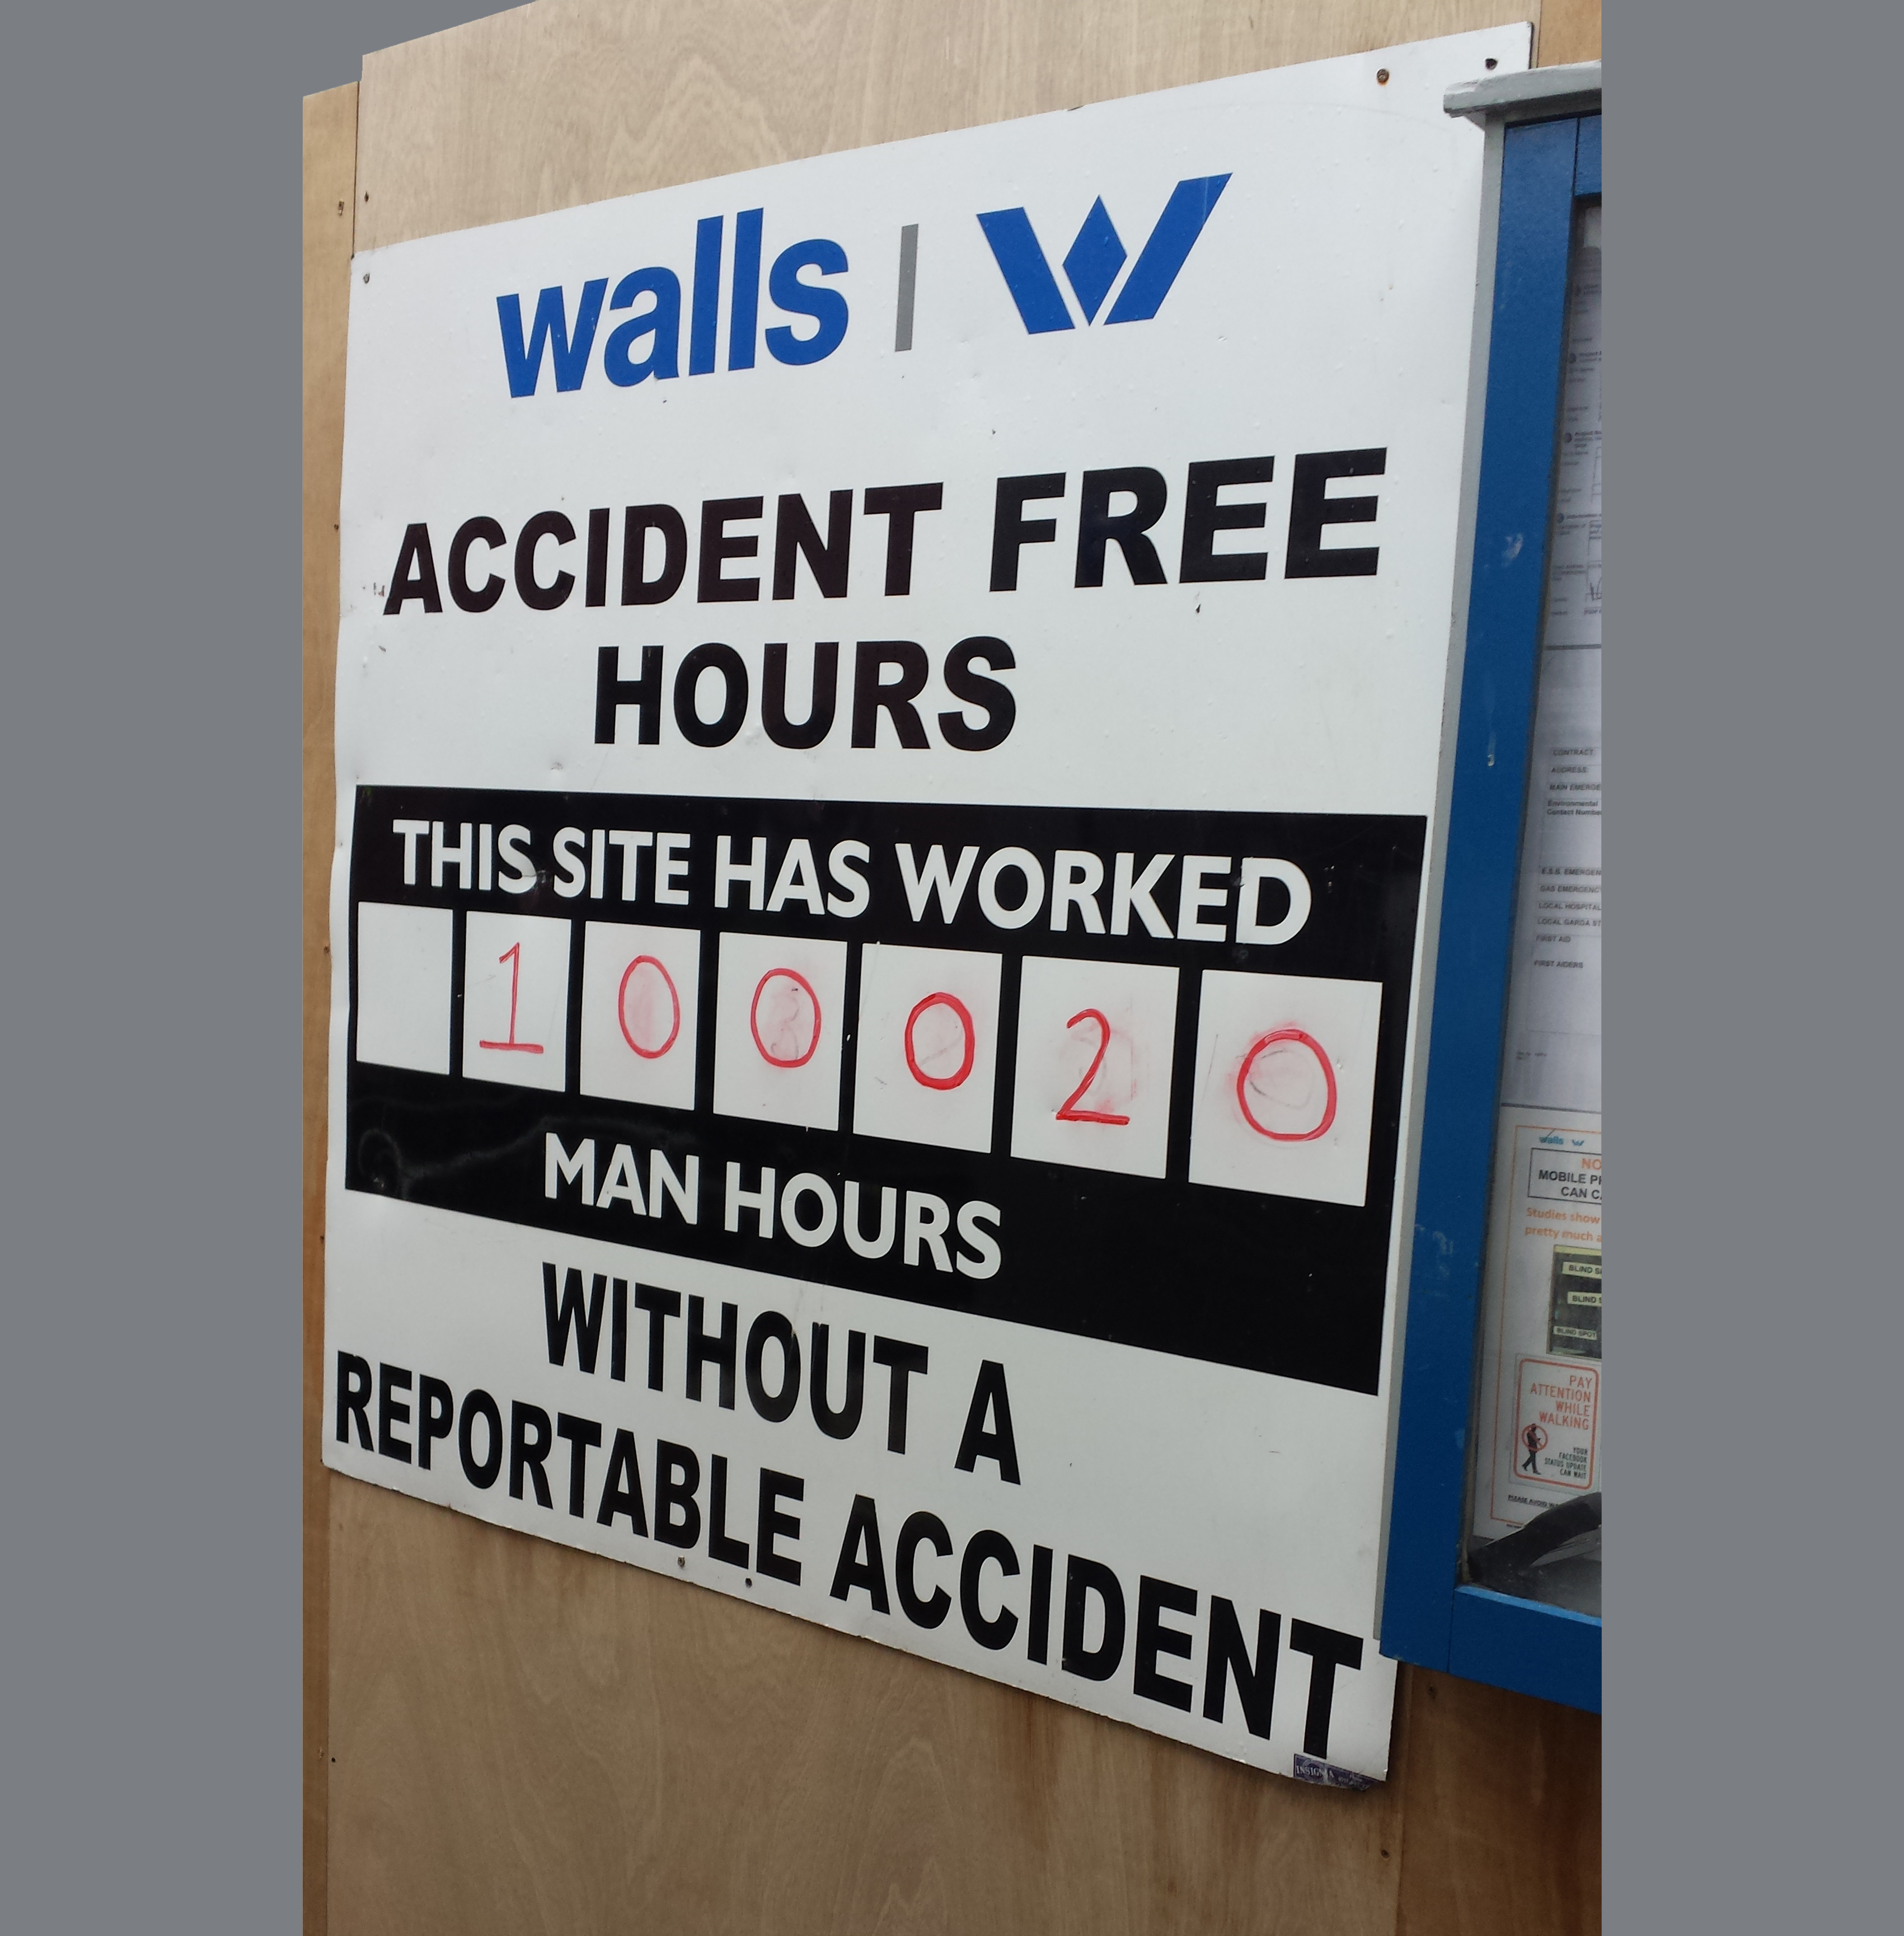 Dublin Landings achieves over 100,000 accident free man-hours ...